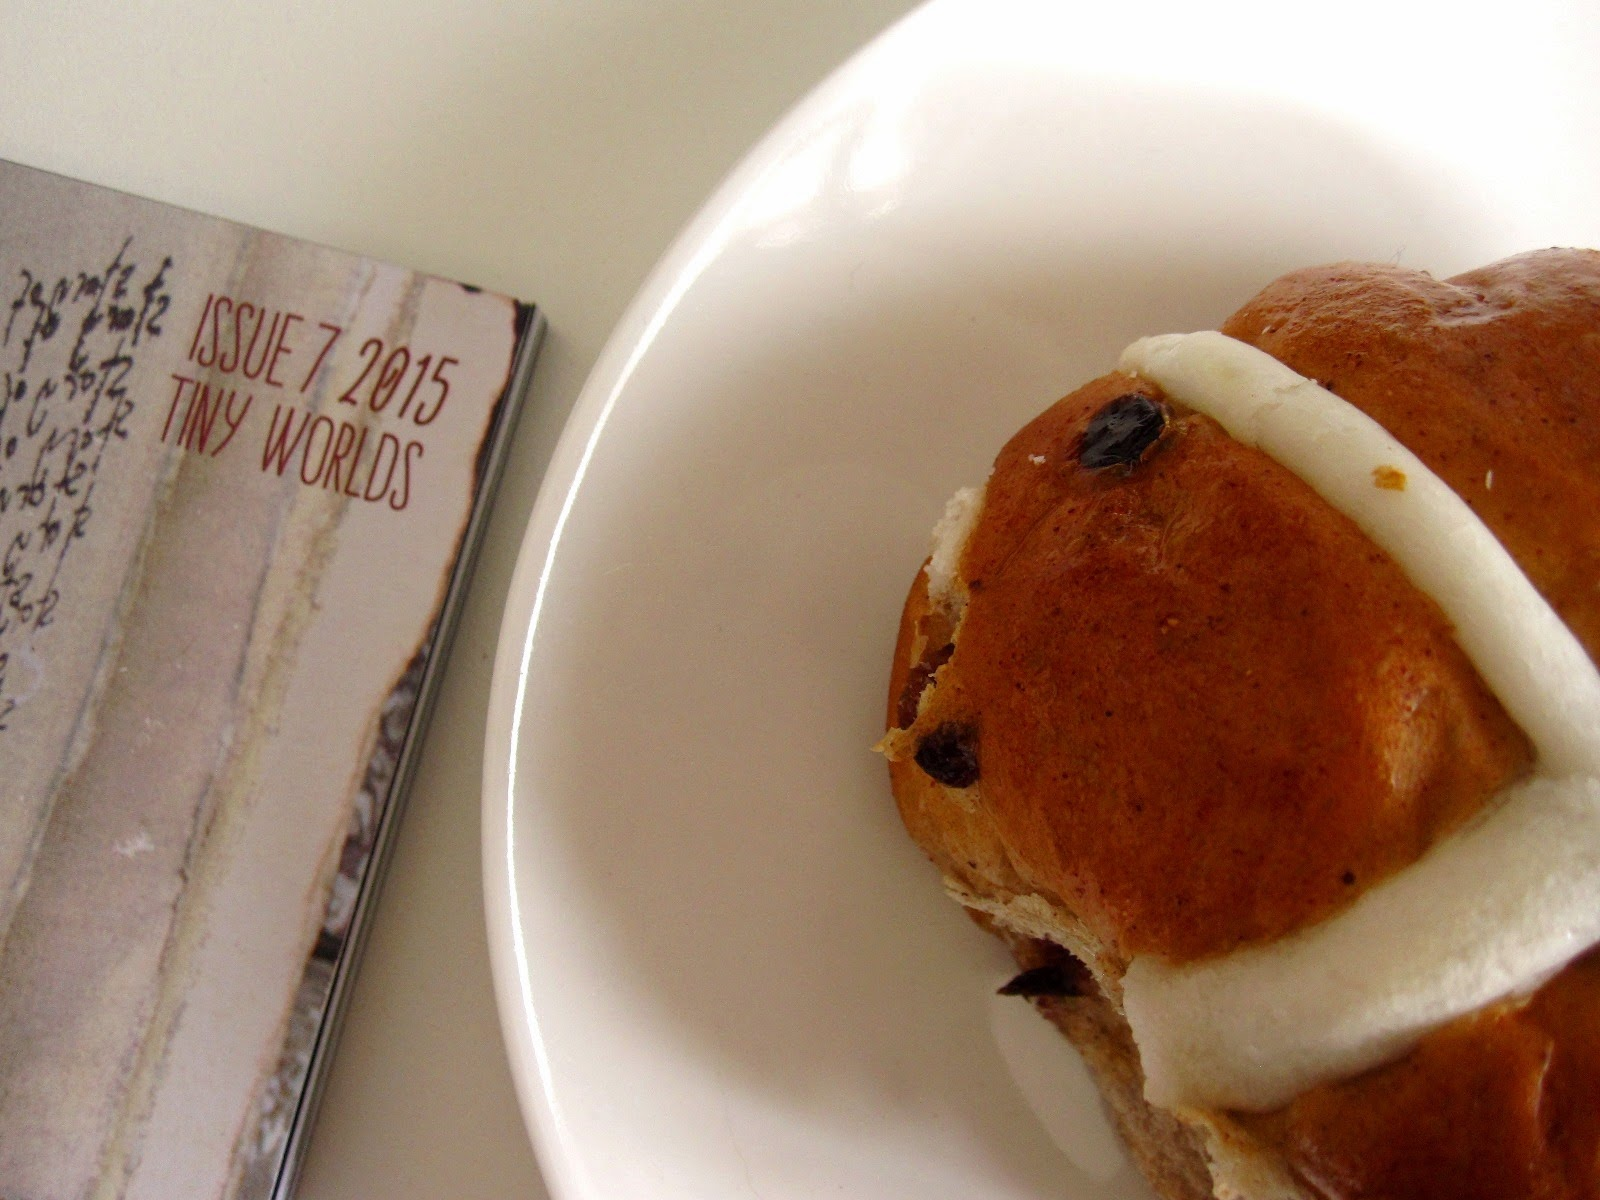 Magazine with 'Issue 7 205: Tiny worlds' written on the cover, next to a mini hot cross bun on a saucer.